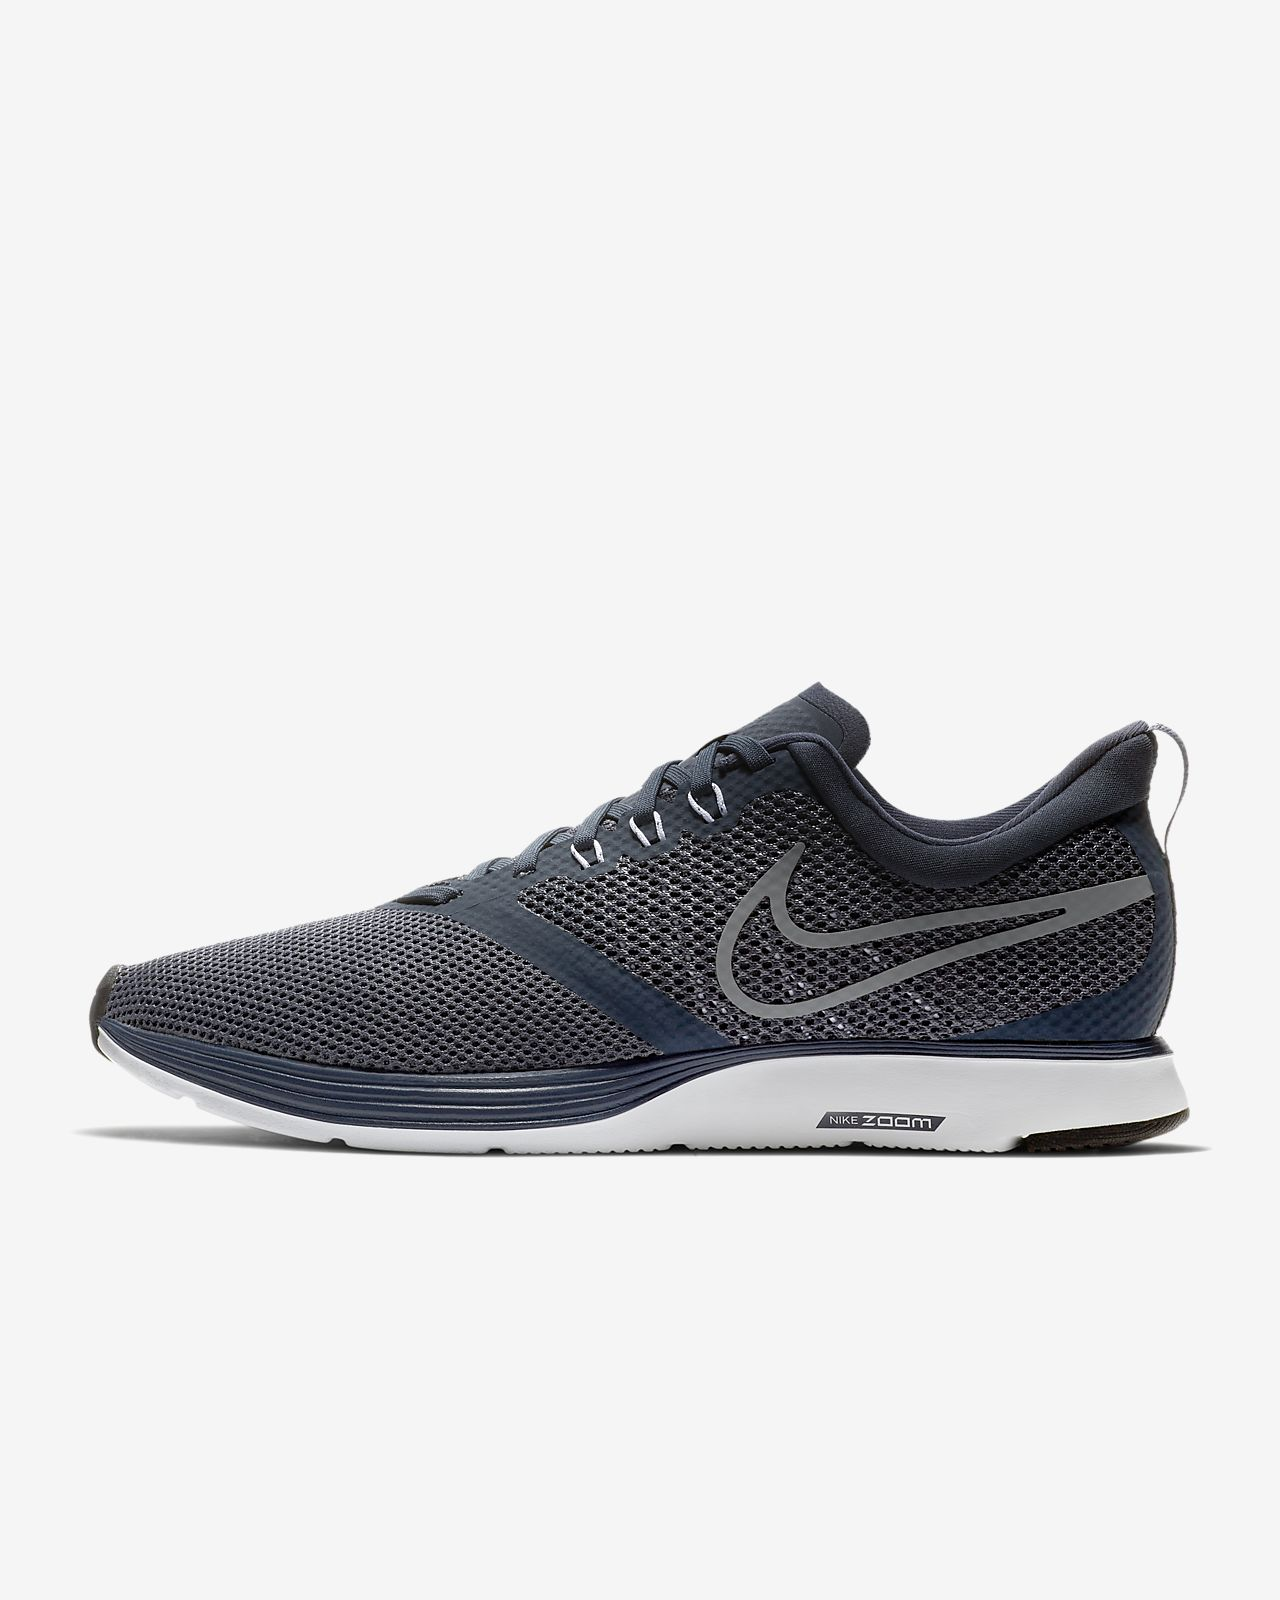 Nike Running Zoom Strike Trainers In Blue AJ0189-400 free shipping cheap online collections for sale with paypal cheap online explore sale online authentic cheap online PPQ9fC